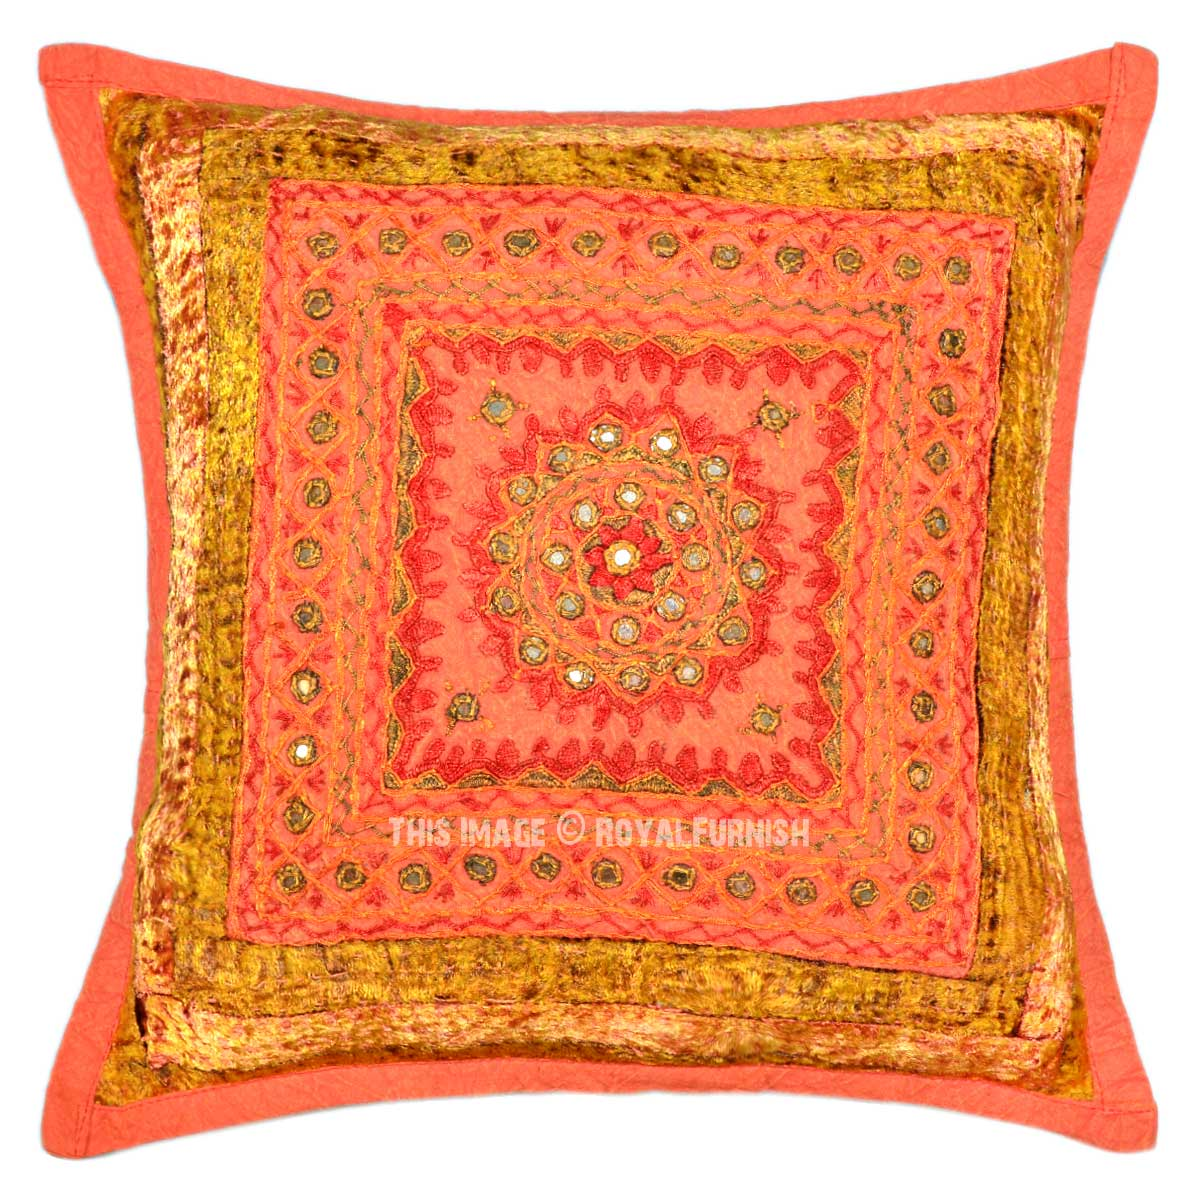 Unique Decorative Accent Pillows : Orange Multi Unique One-Of-A-Kind Handmade Decorative Mirror Pillow Case 16X16 - RoyalFurnish.com